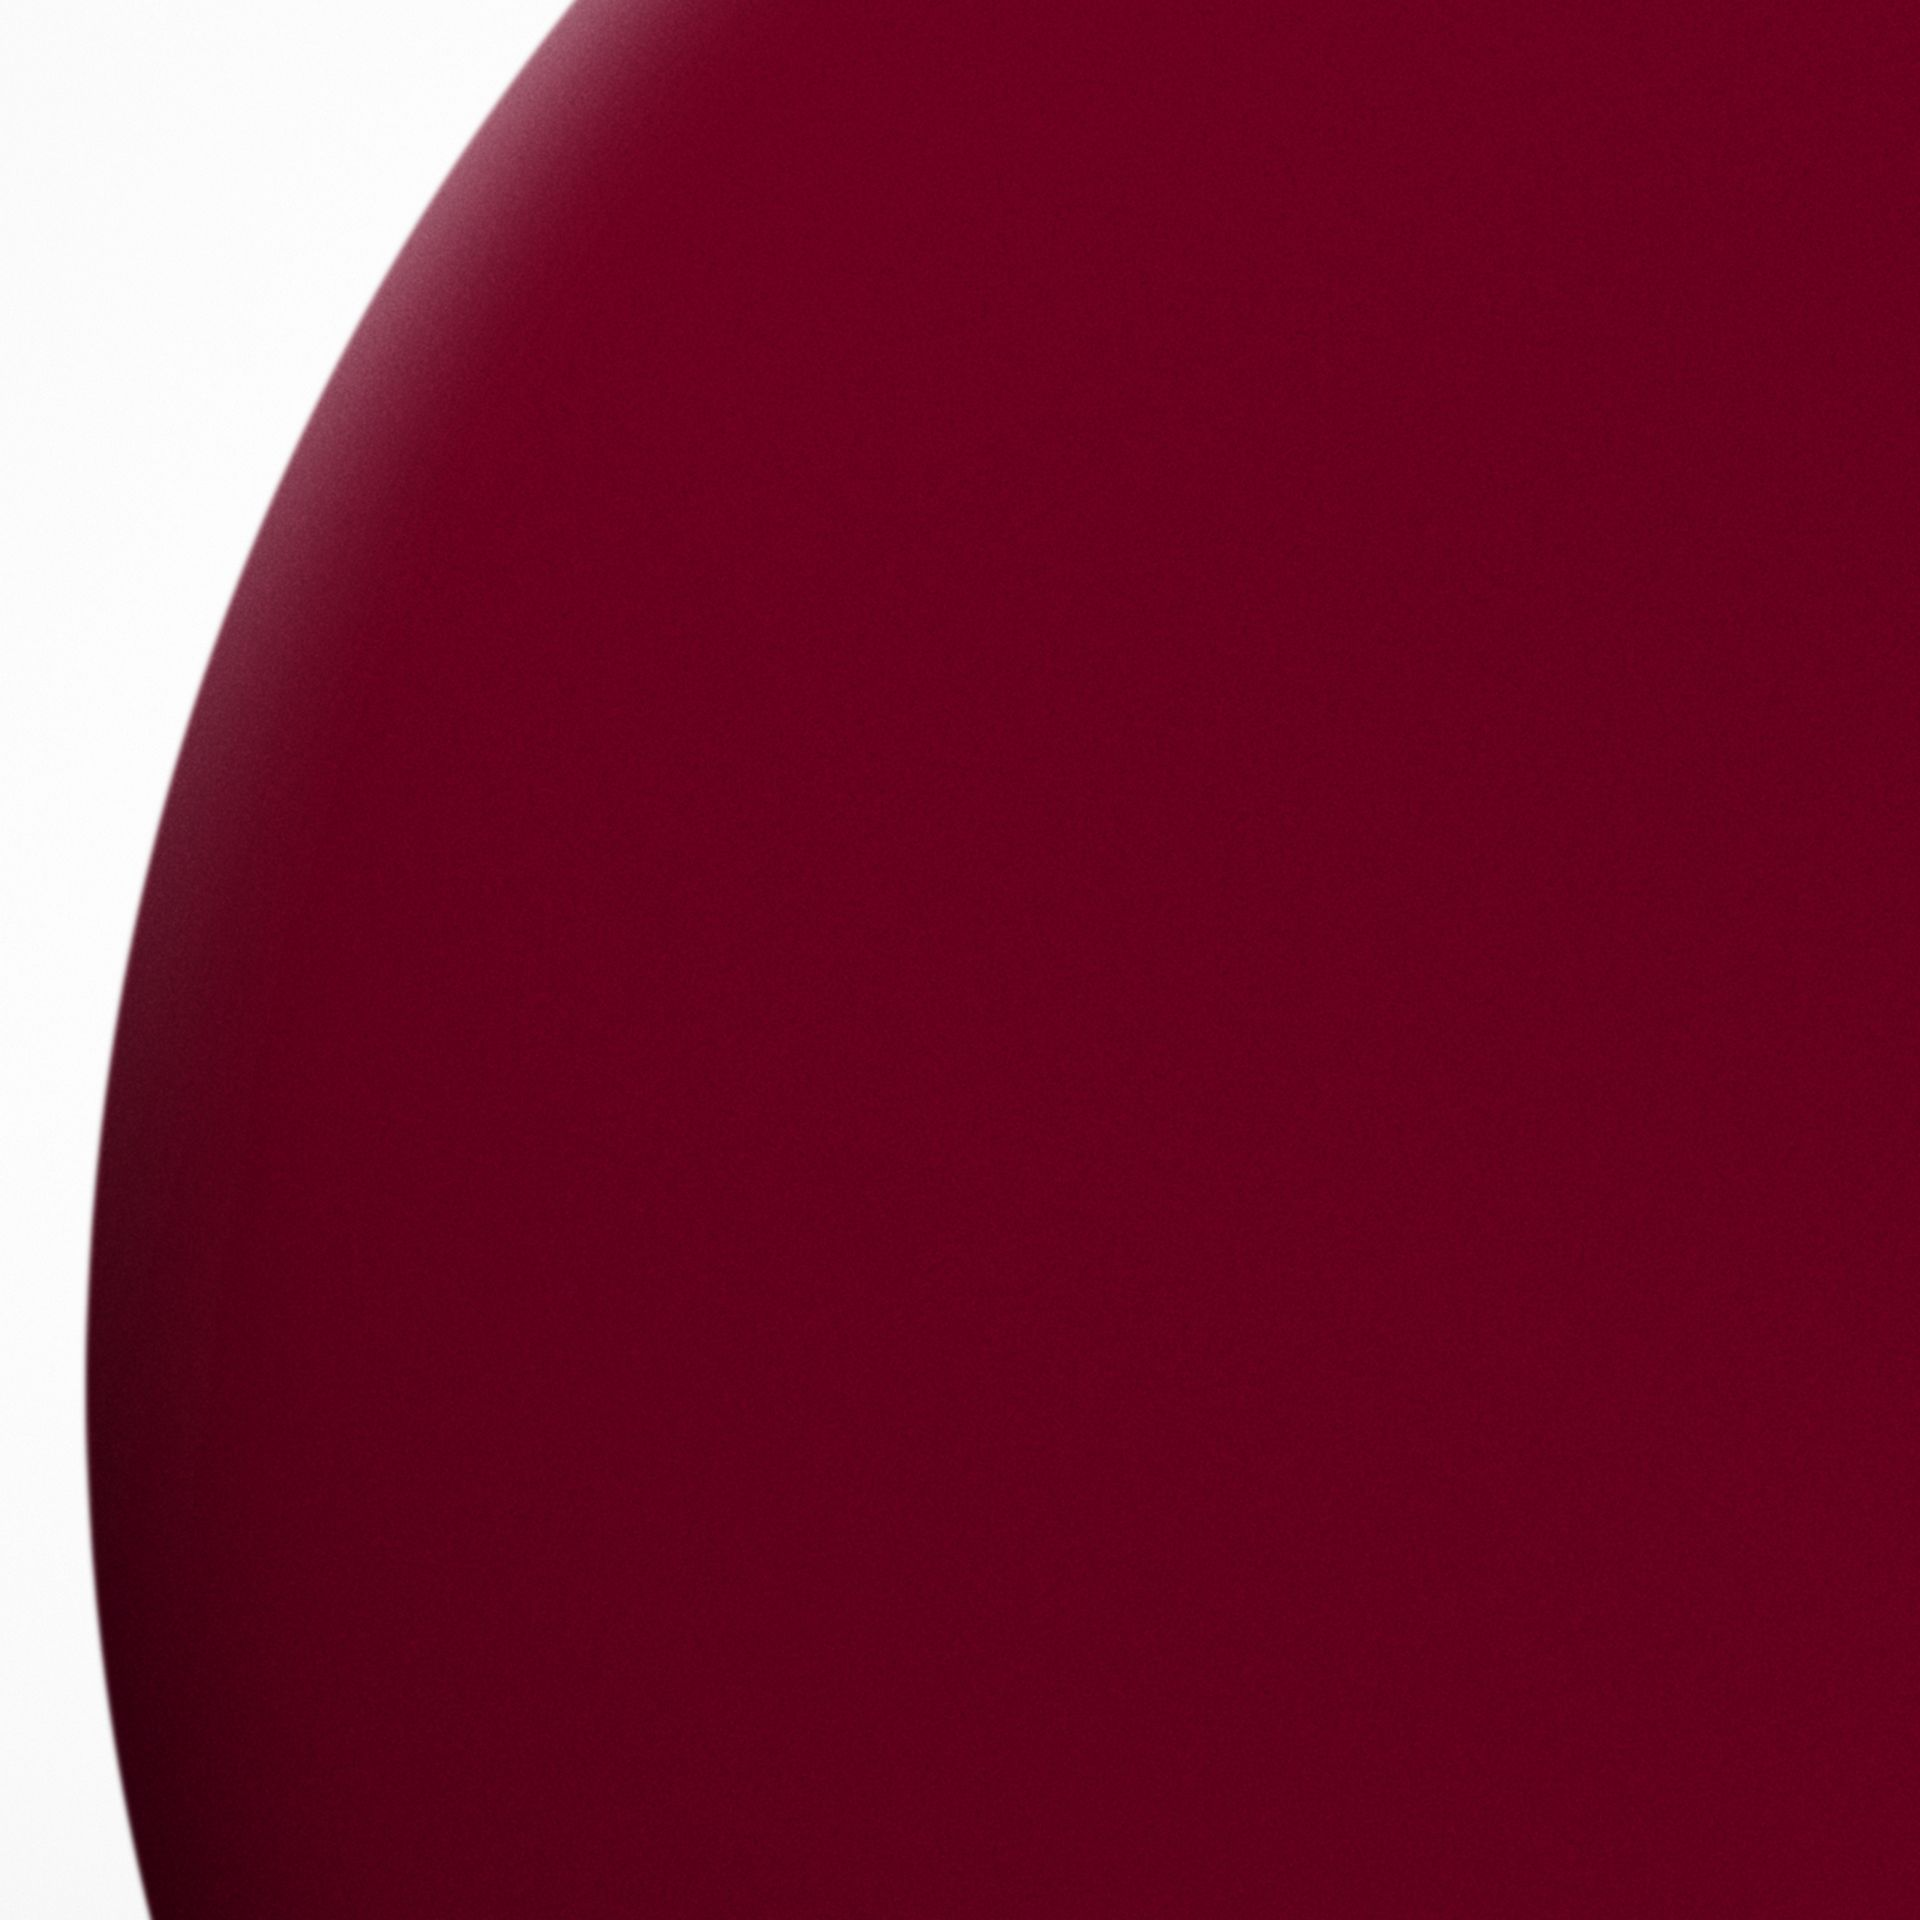 Oxblood 303 Nail Polish - Oxblood No.303 - gallery image 2